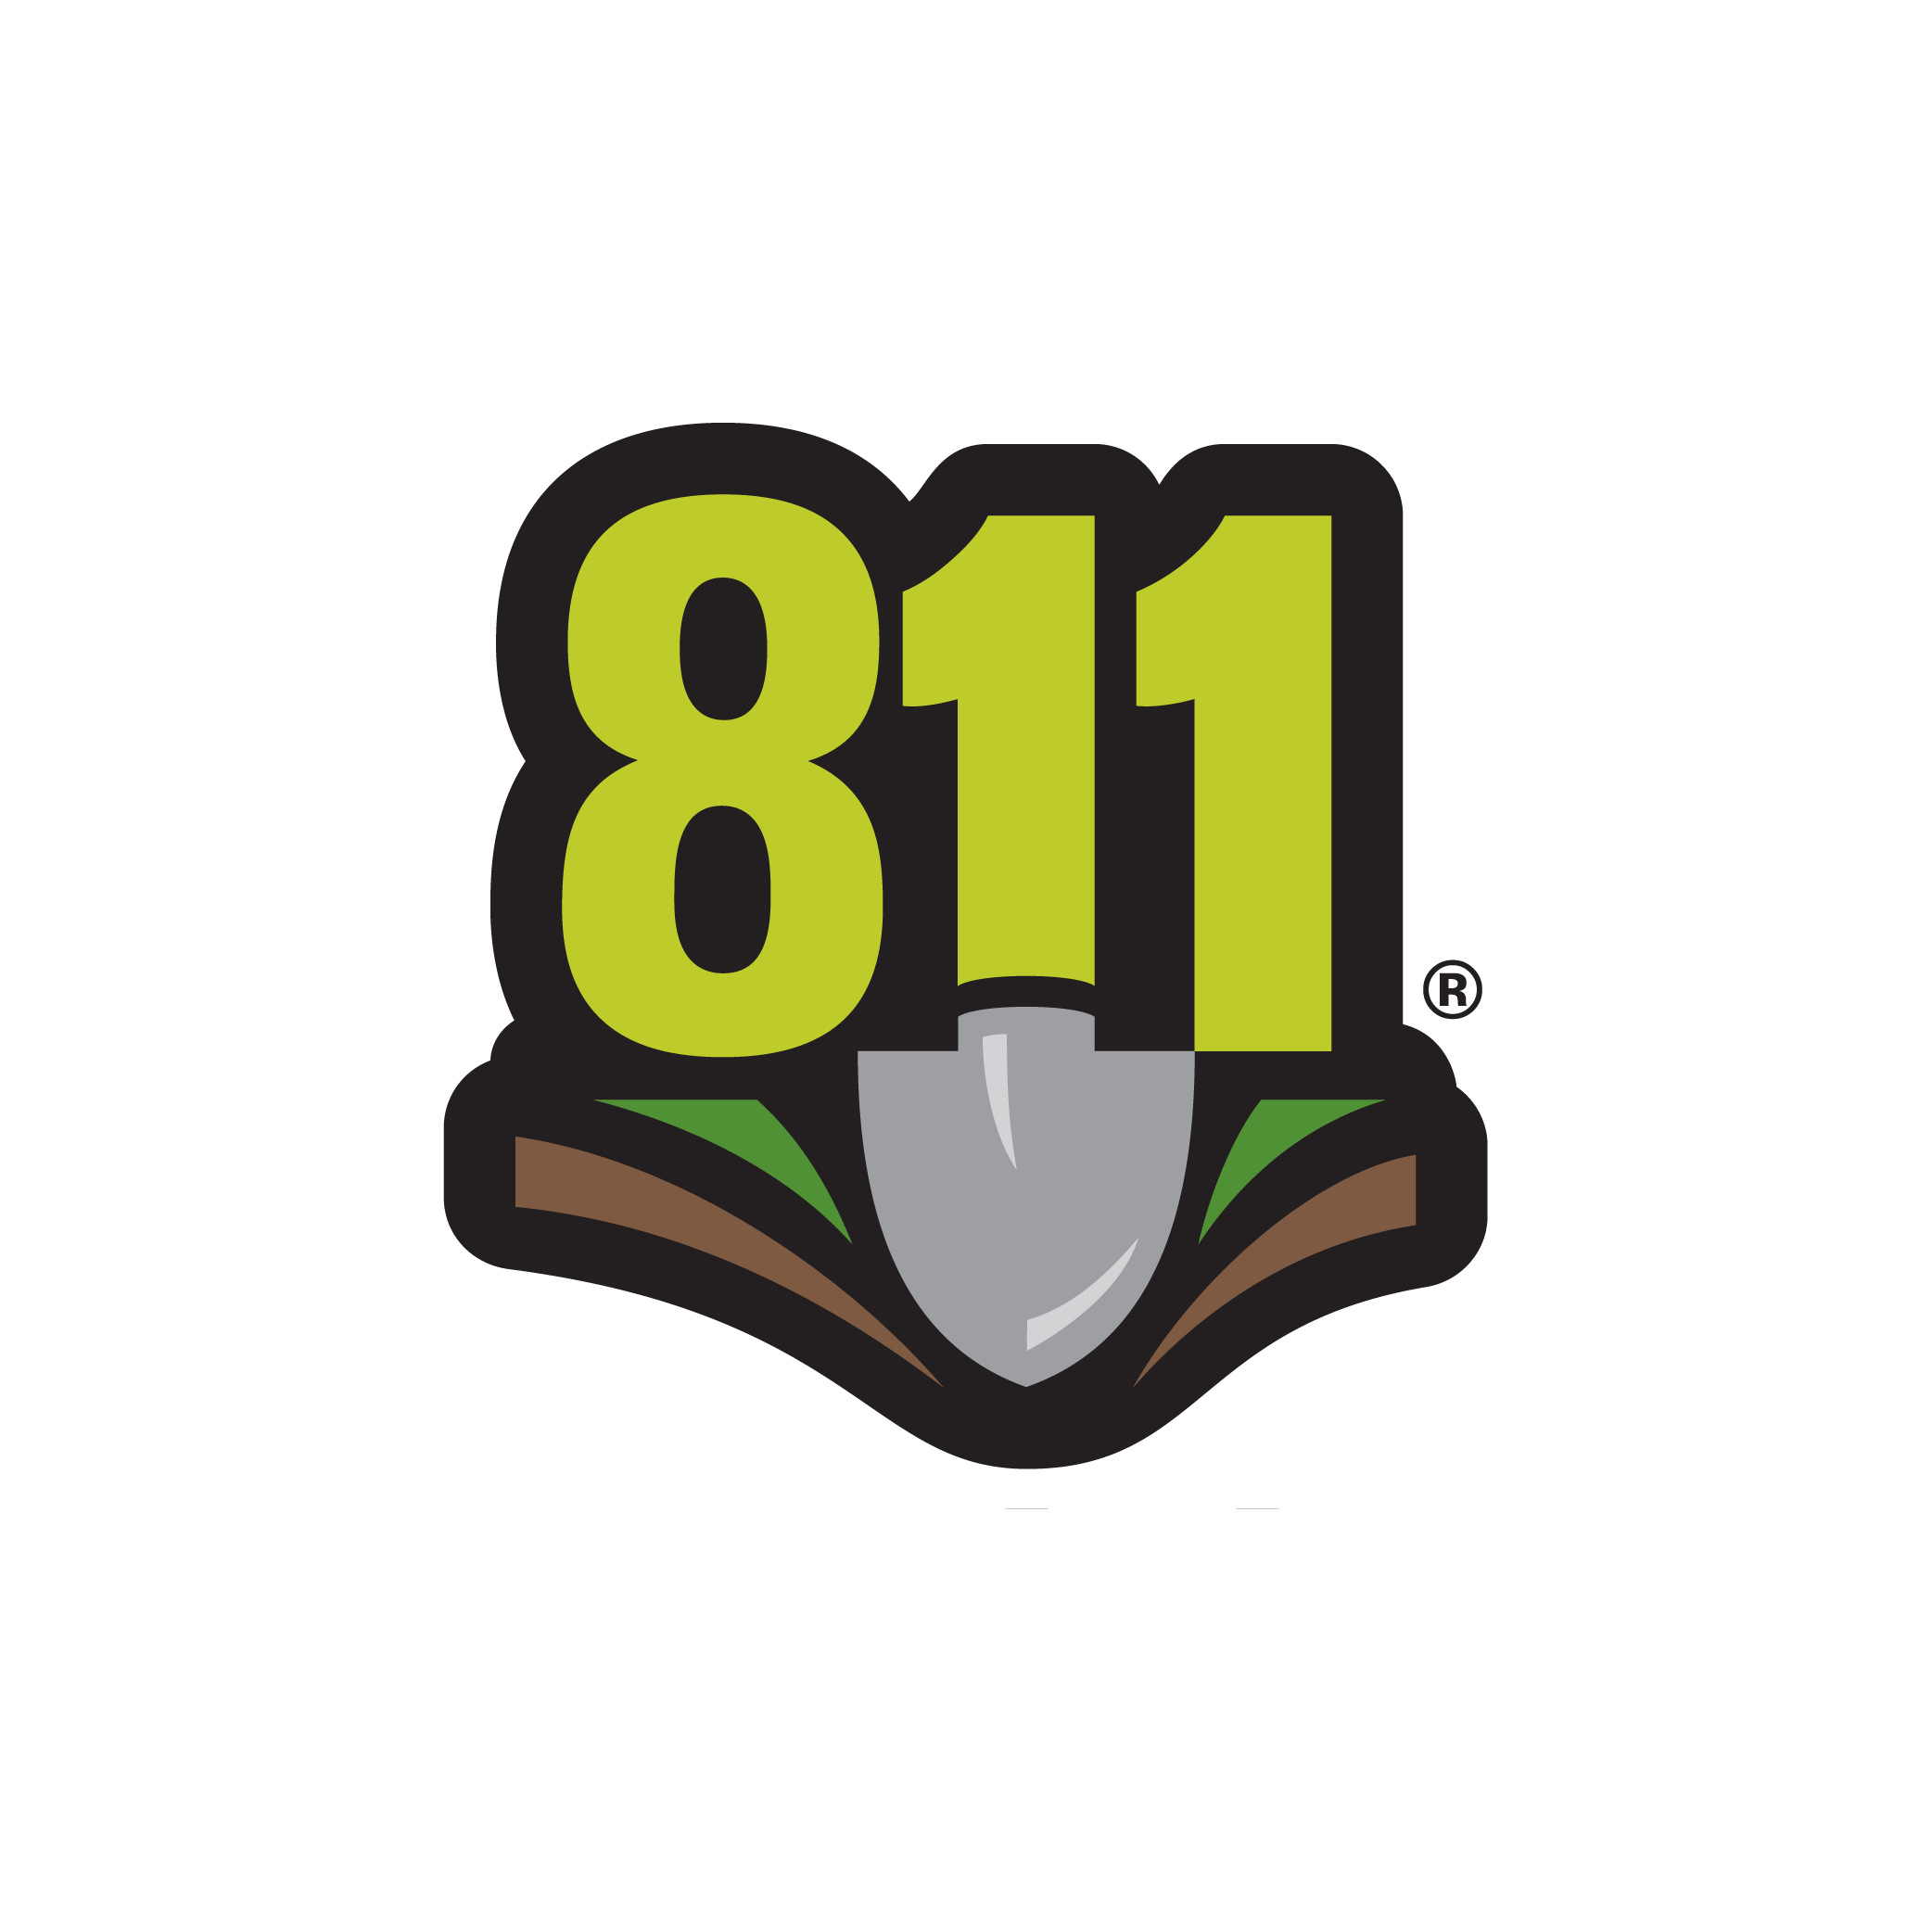 811.png